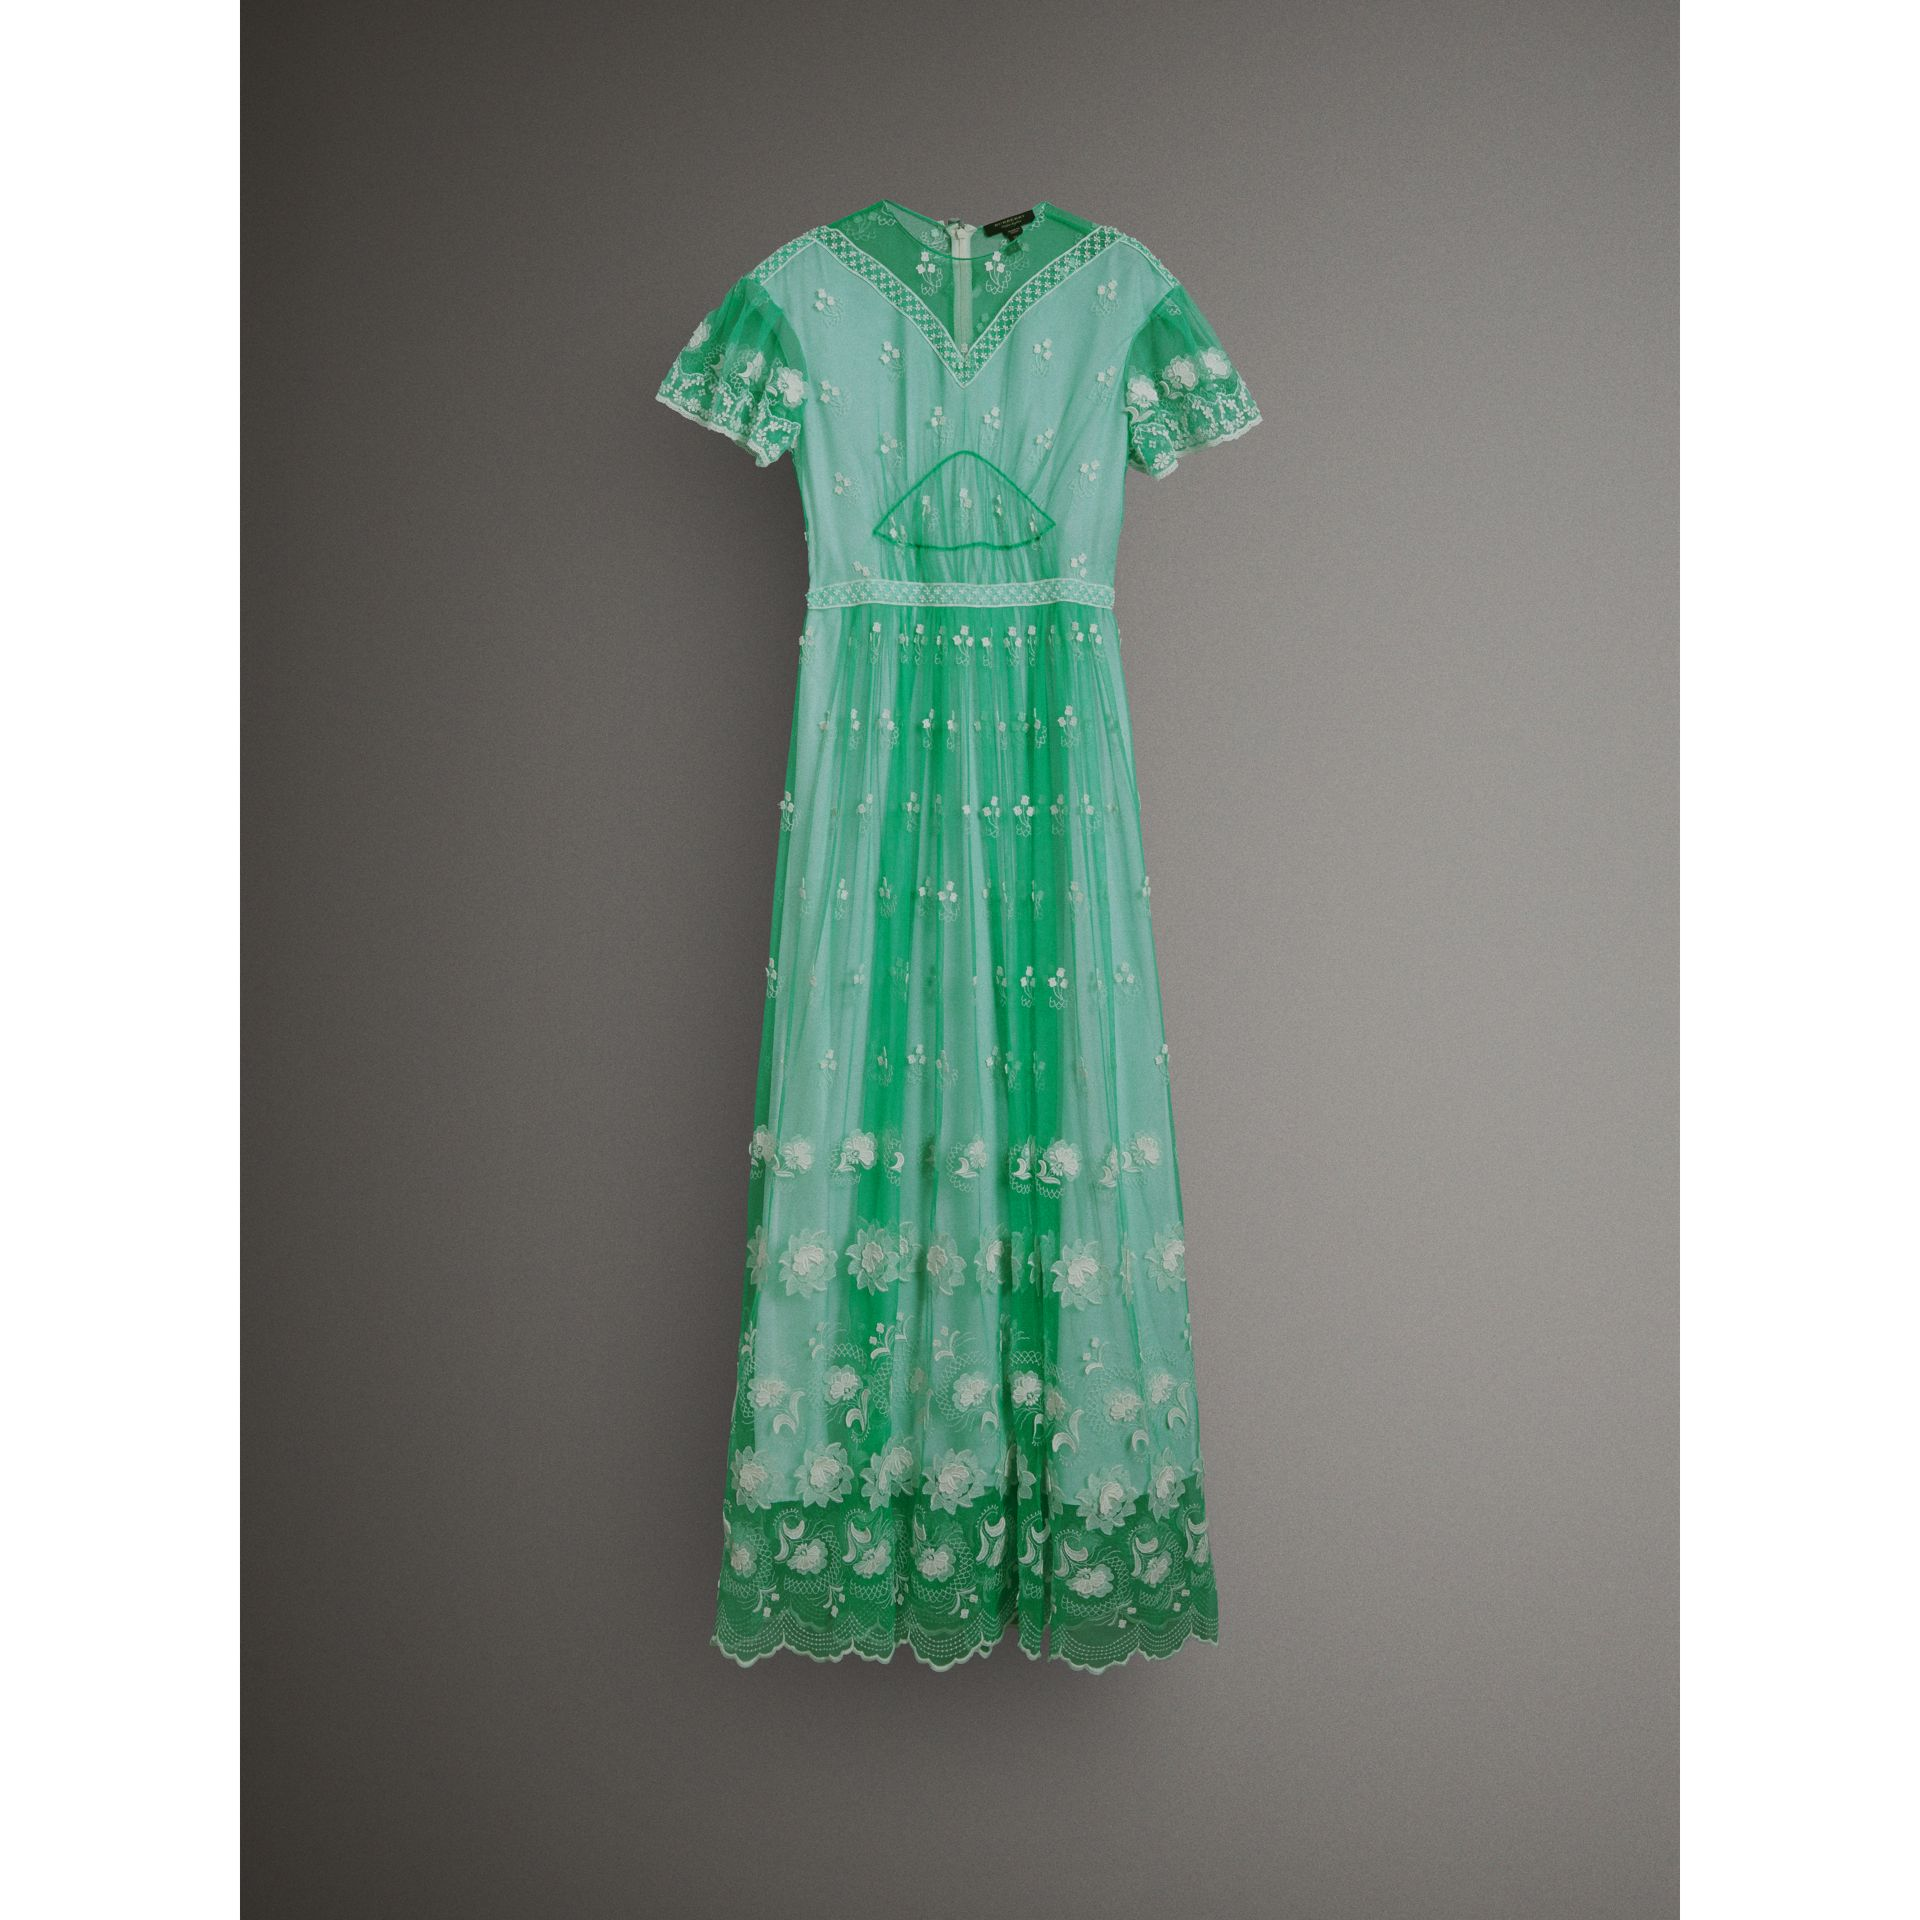 Embroidered Tulle Gathered Dress in Aqua Green/white - Women | Burberry Singapore - gallery image 3